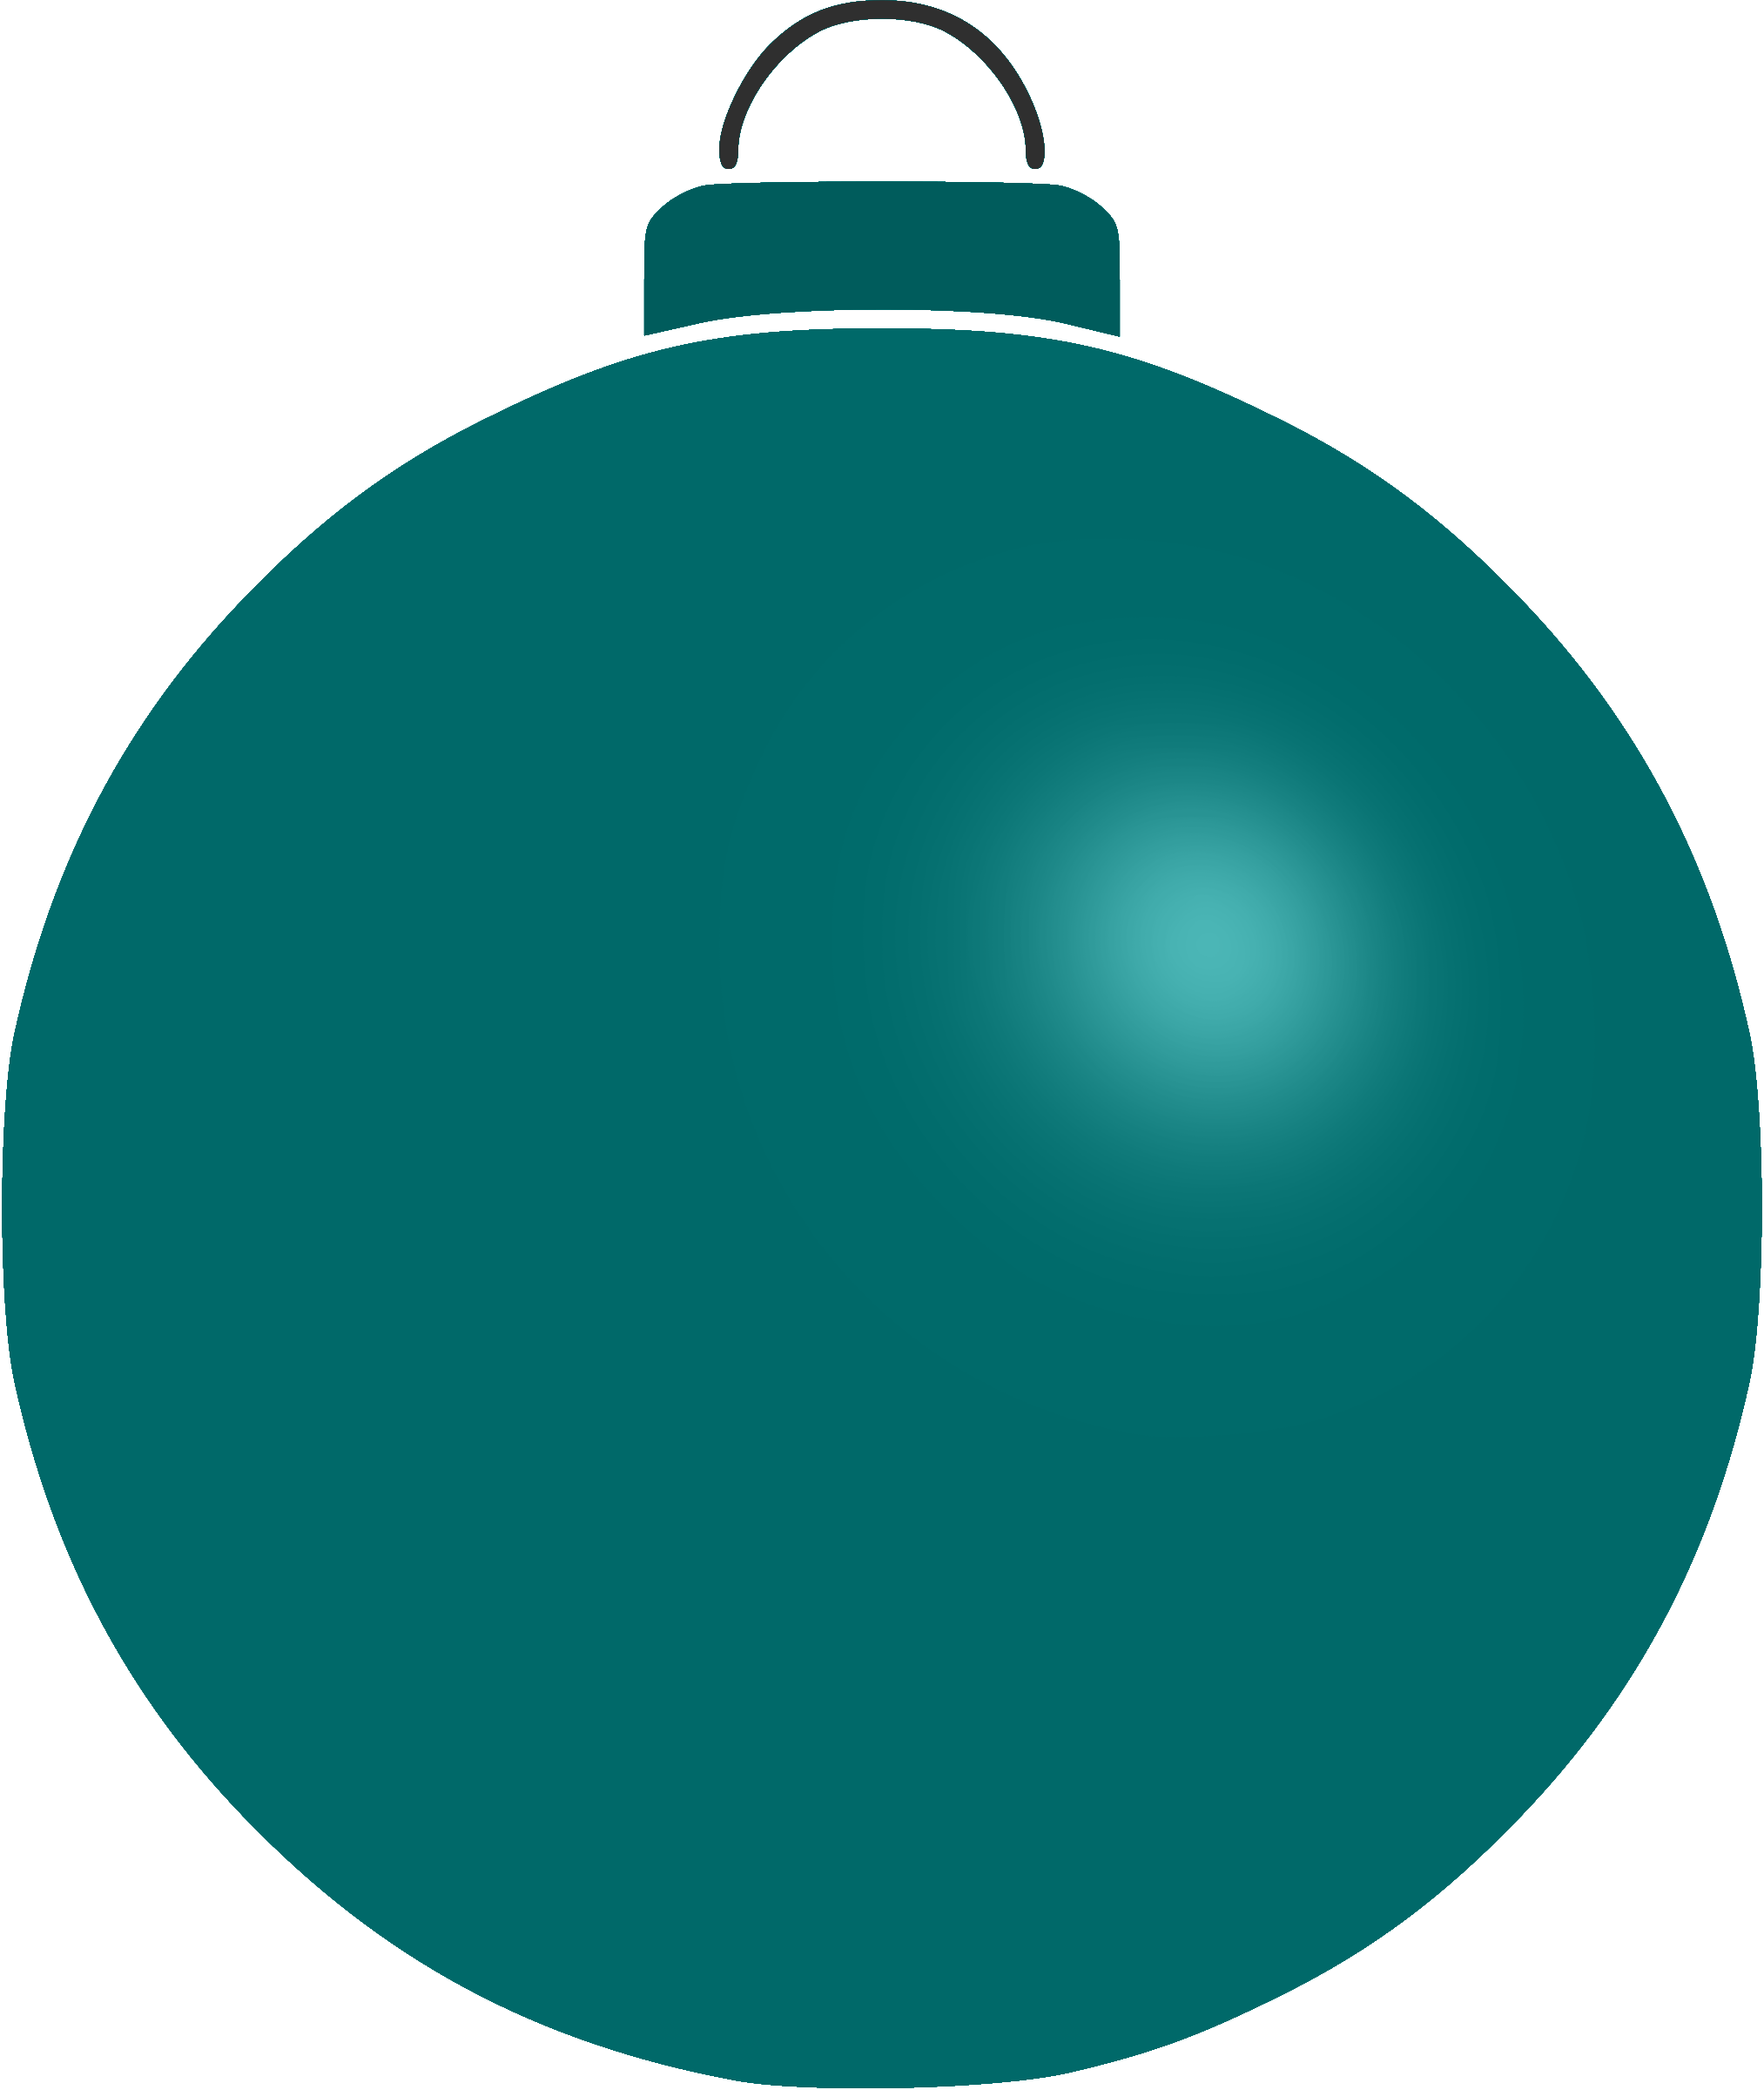 Find great deals on eBay for Plain Ceramic Christmas Baubles. Shop with confidence.